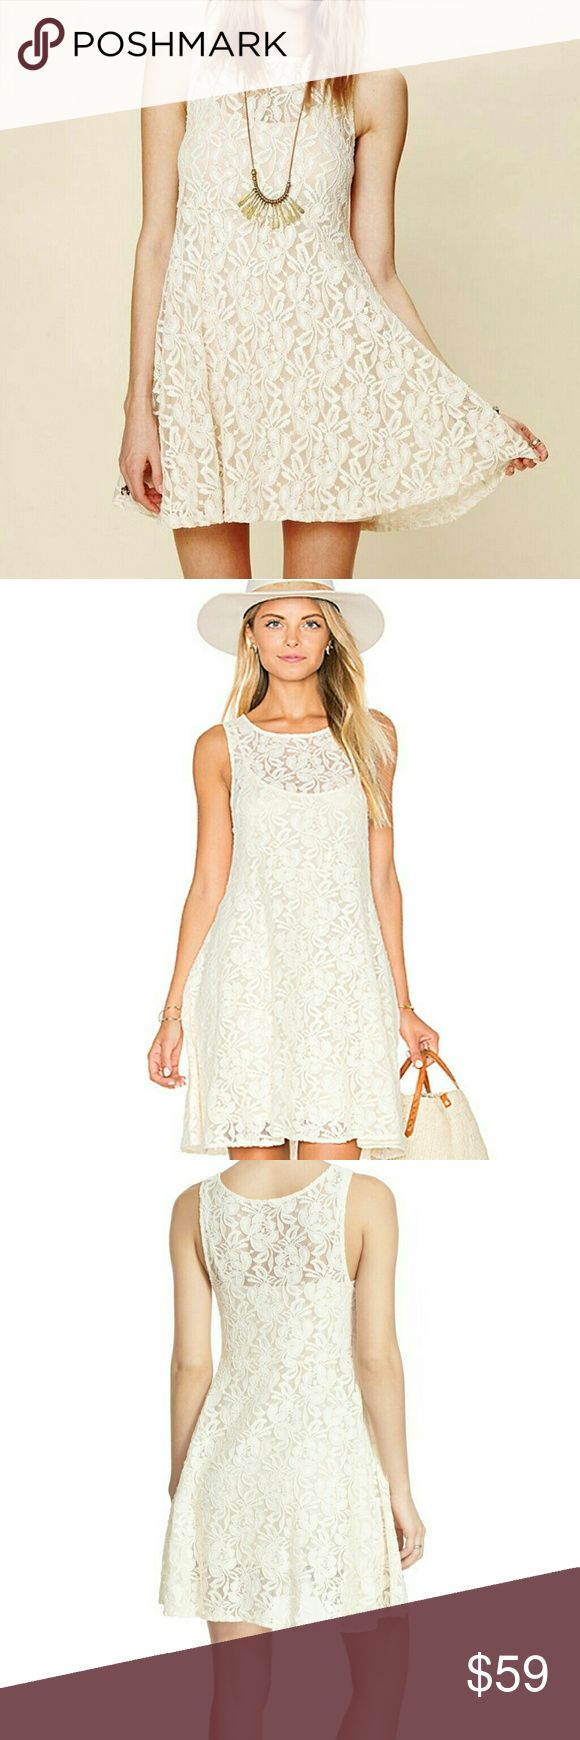 Free People Lace Dress Lace Ivory color Slip is included  Length is above the knee Free People Dresses Mini